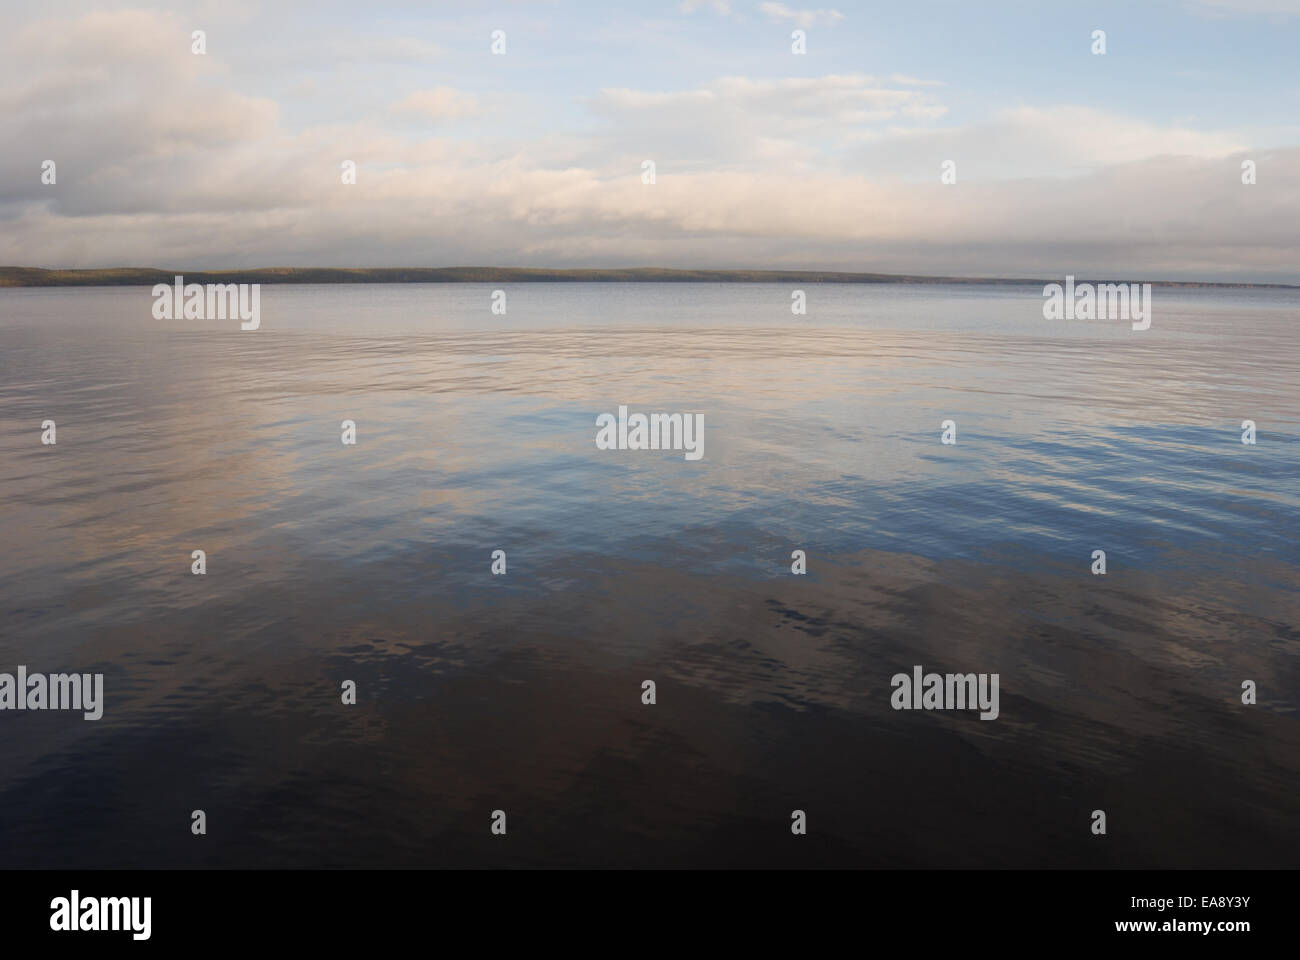 expanse of Lake Onega windless morning, Russia - Stock Image